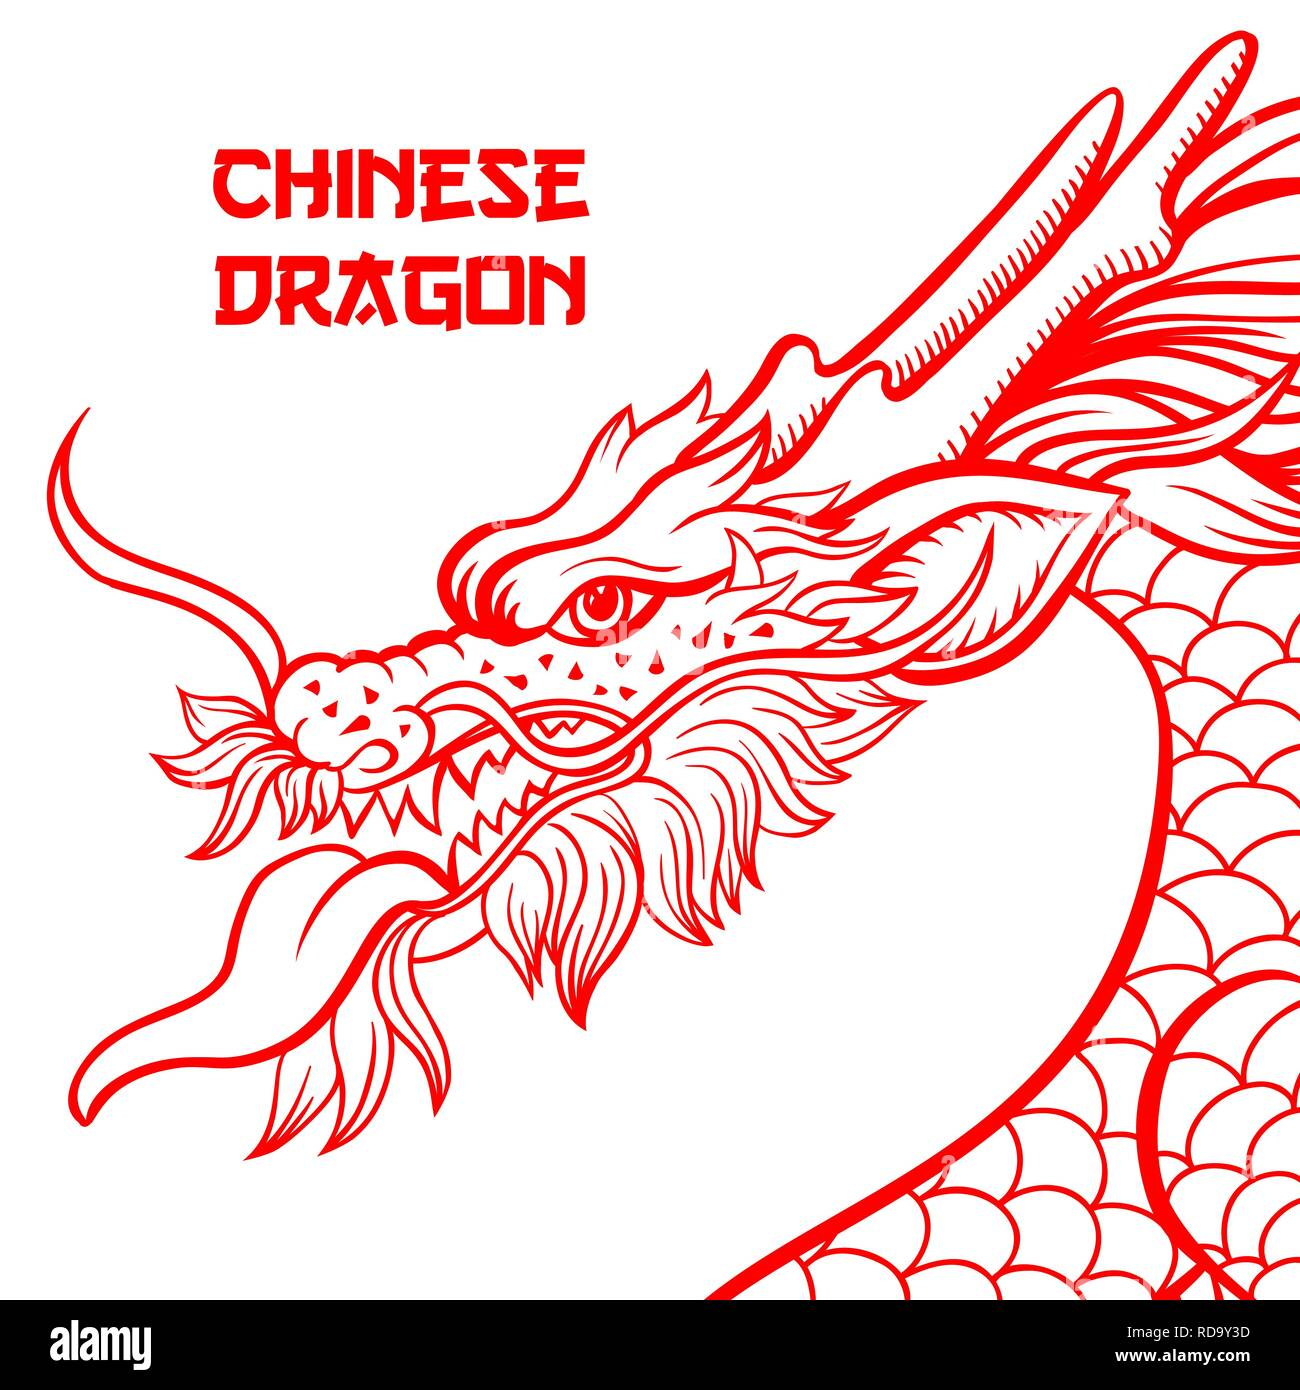 Chinese dragon hand drawn vector illustration. Mythical creature ink pen sketch. Red and white clipart. Serpent freehand drawing. Isolated monochrome mythic design element. Chinese new year poster - Stock Vector